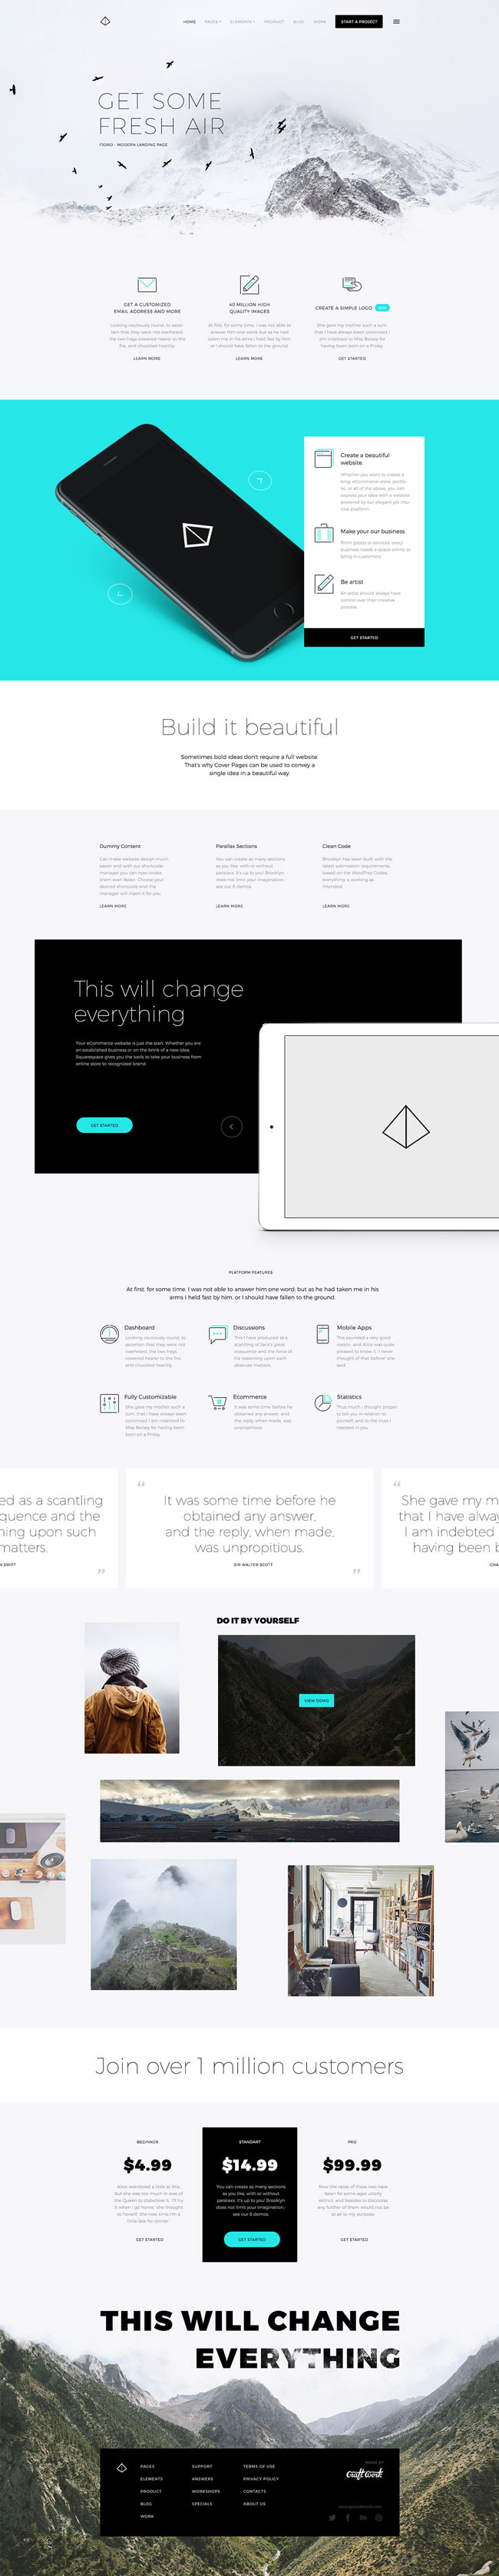 Fjord - Free PSD Landing Page Tempalte